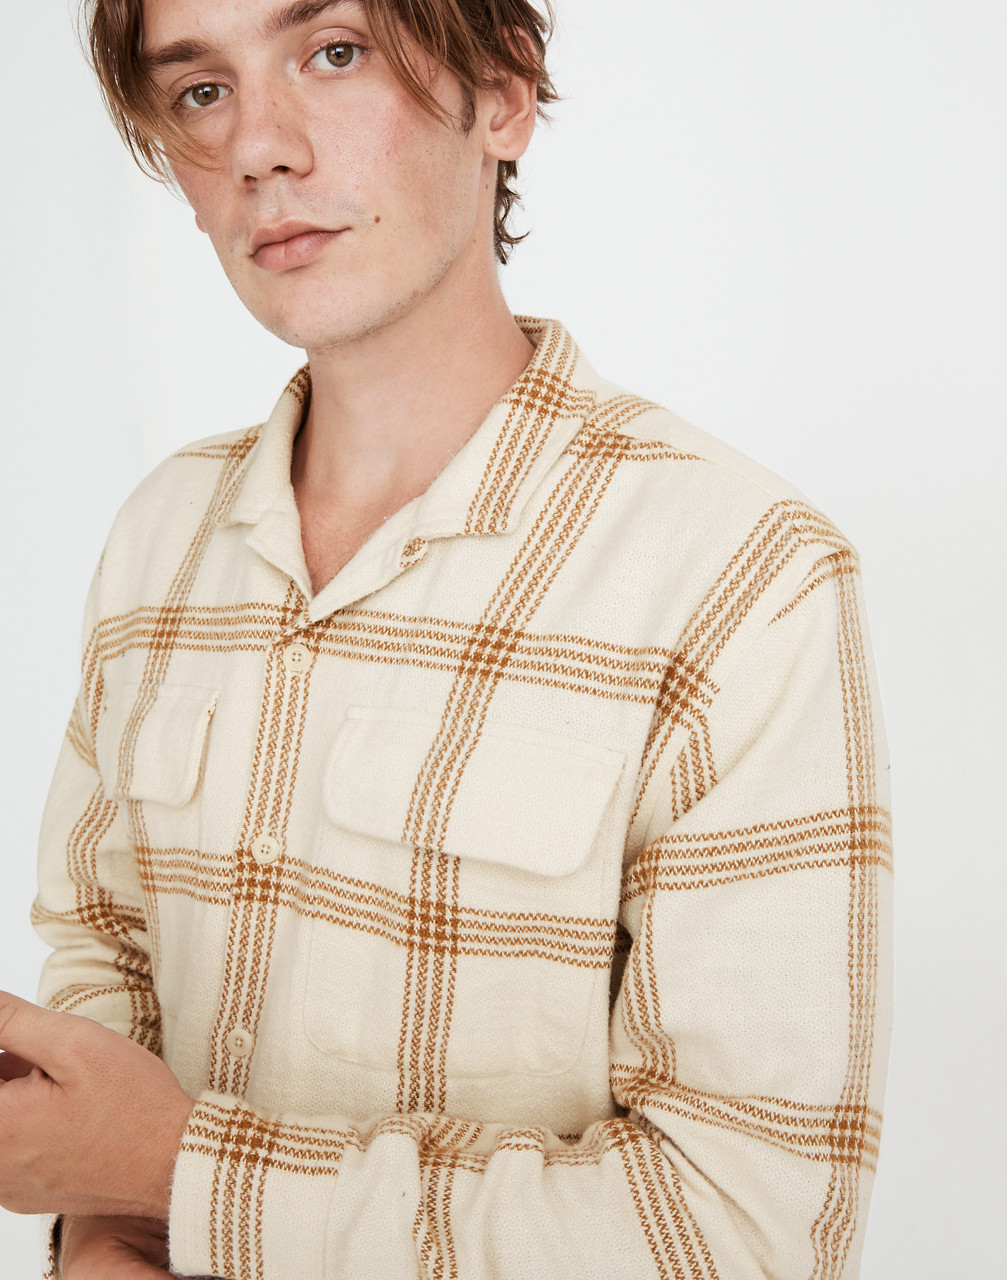 Mens Vintage Shirts – Casual, Dress, T-shirts, Polos Flannel Easy Long-Sleeve Camp Shirt in Windowpane $98.00 AT vintagedancer.com